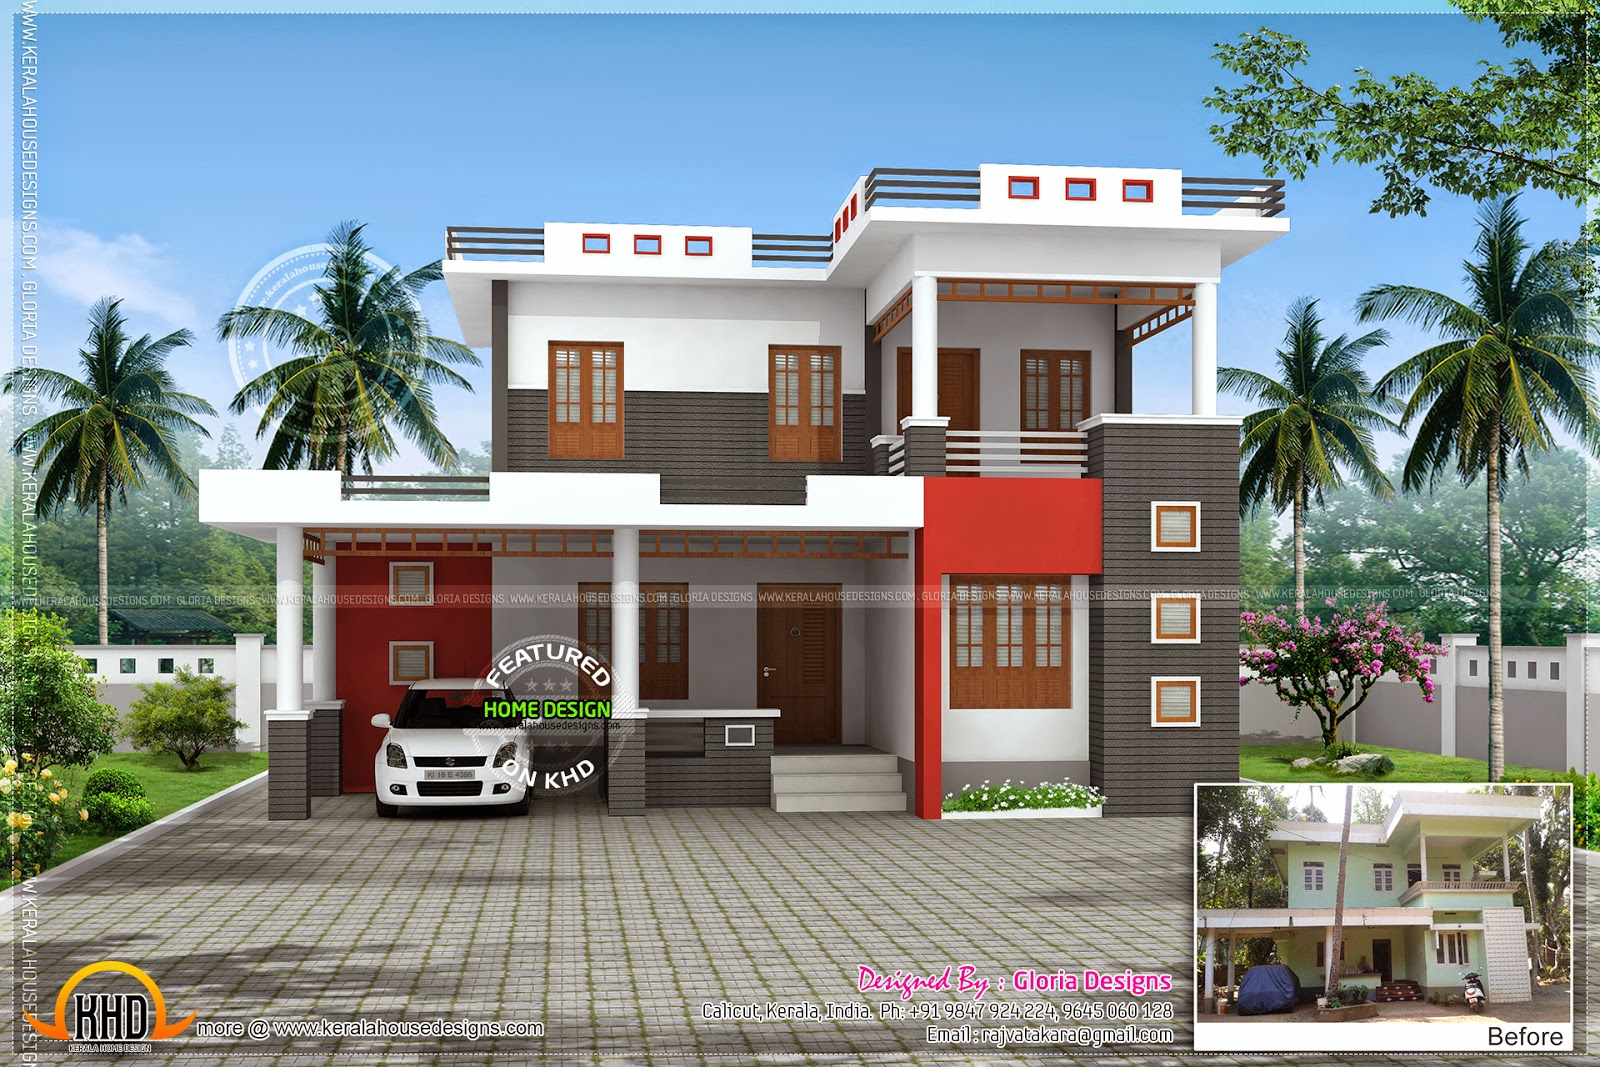 Renovation 3d model for an old house kerala home design for House front model design